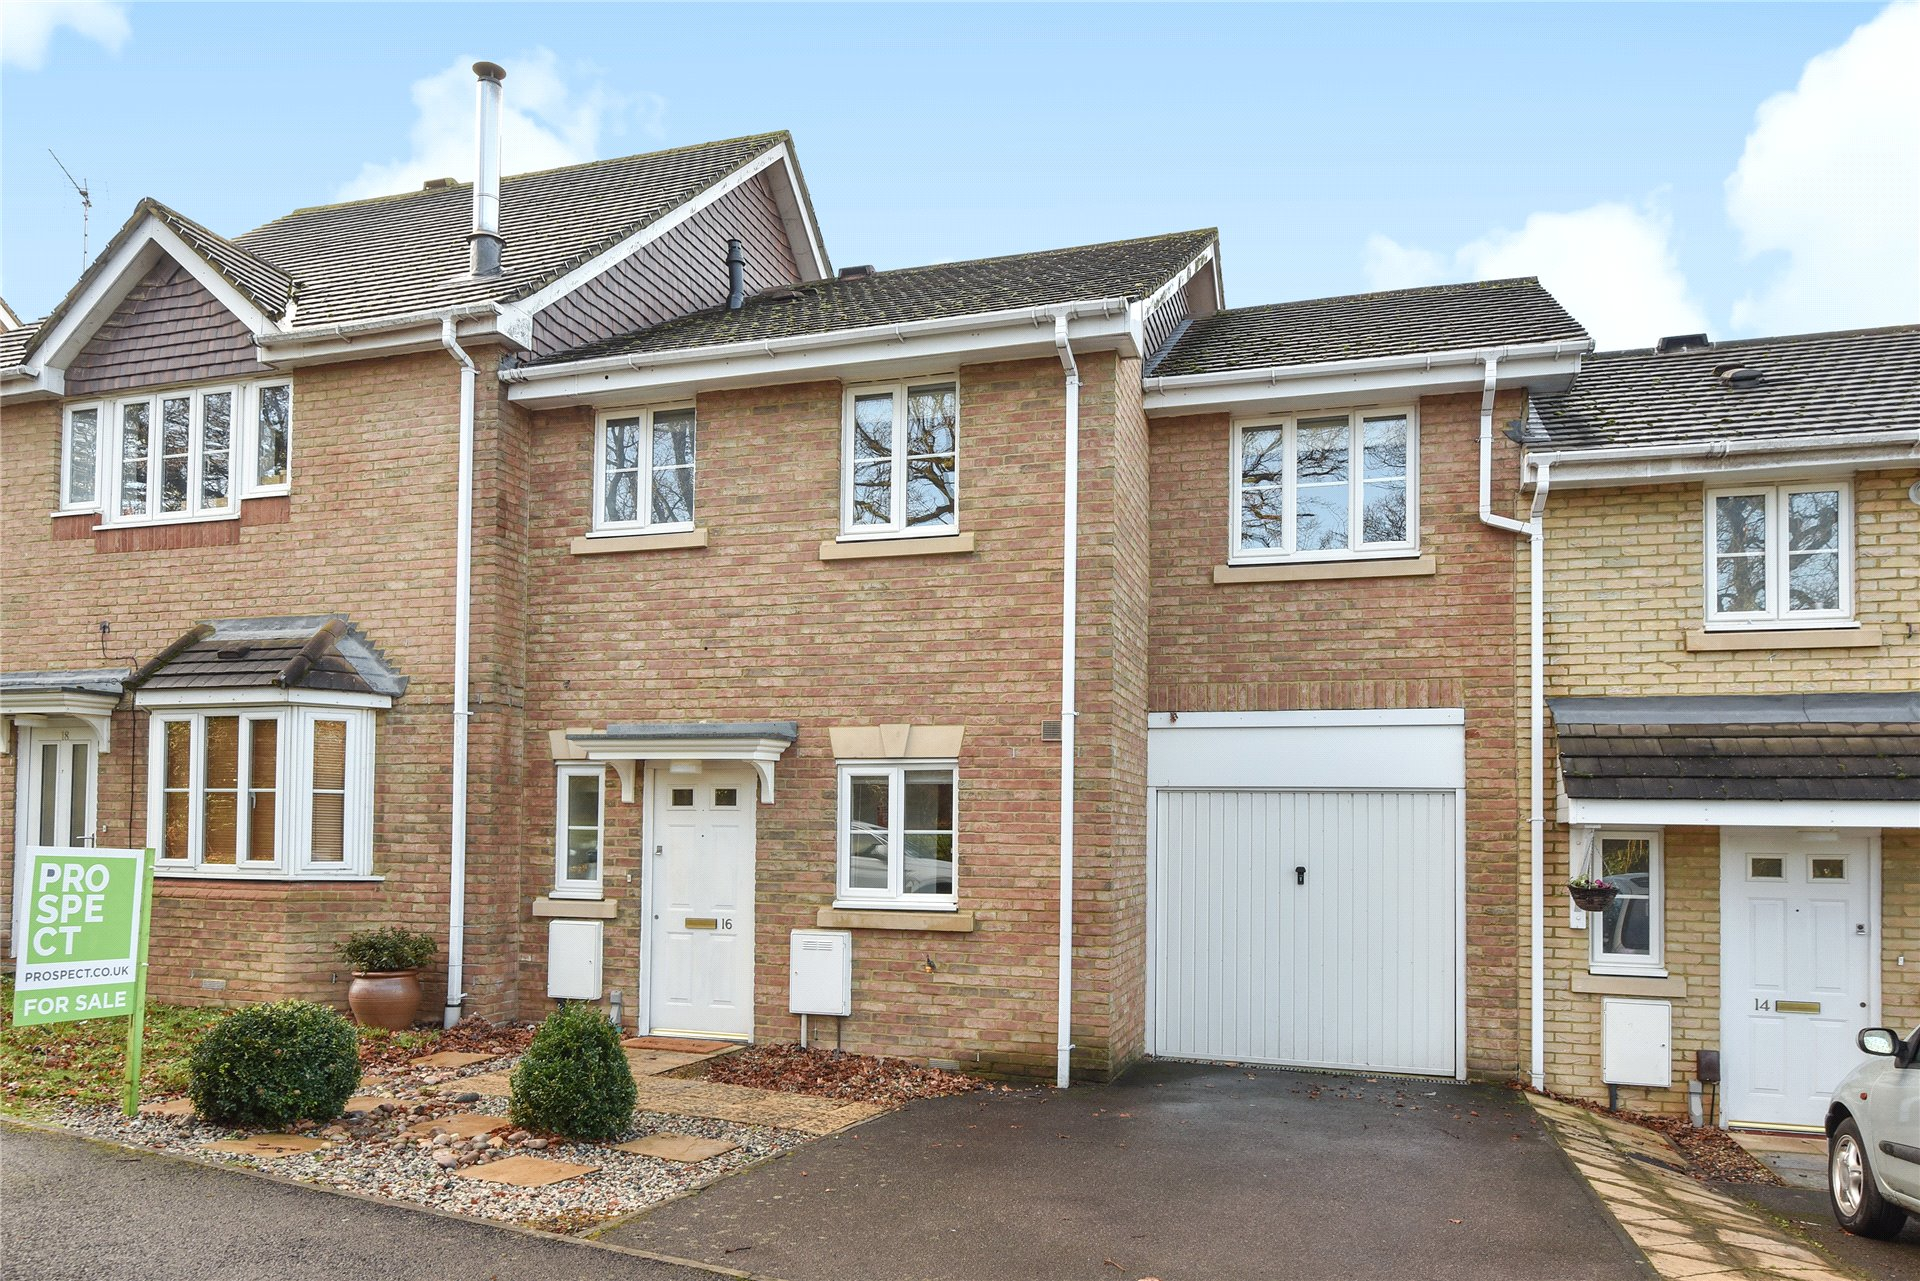 3 Bedrooms Terraced House for sale in Goddard Way, Warfield, Berkshire, RG42